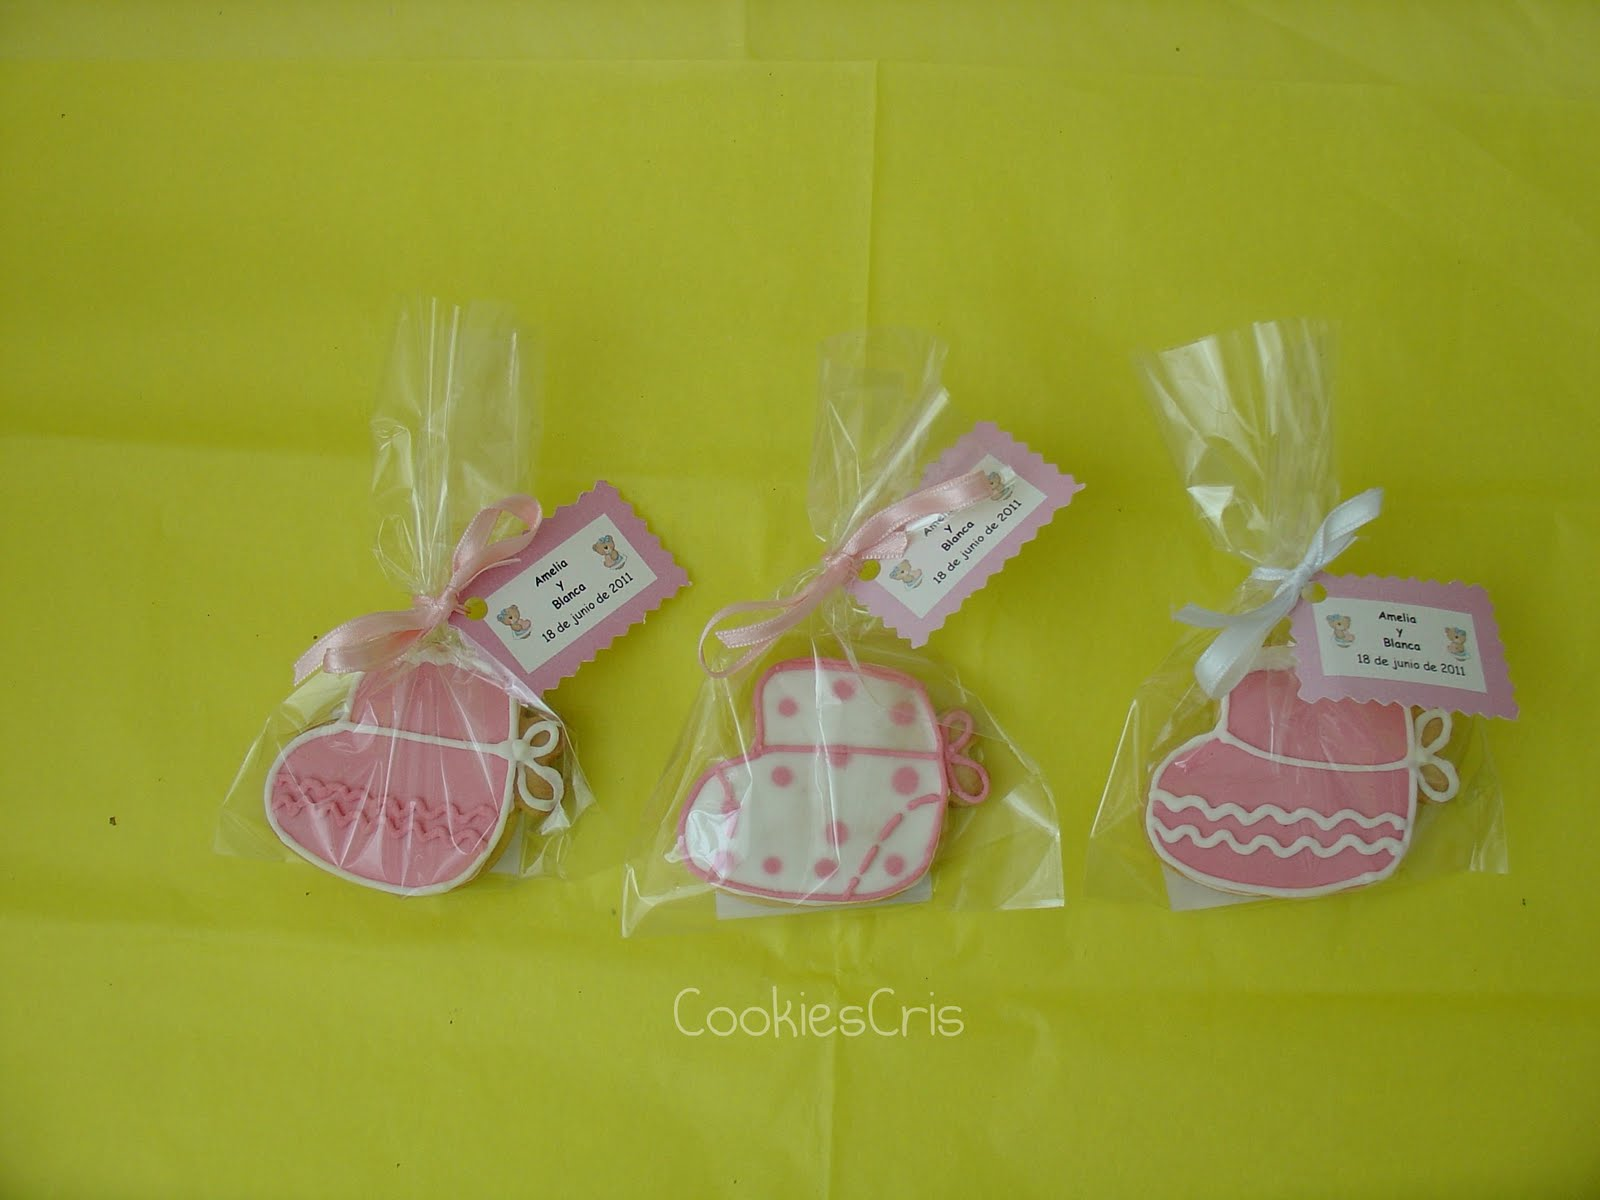 Galletas Para Bebes De 7 Meses Cookiescris Galletas Para Bebes Y Quotel Regreso Quot